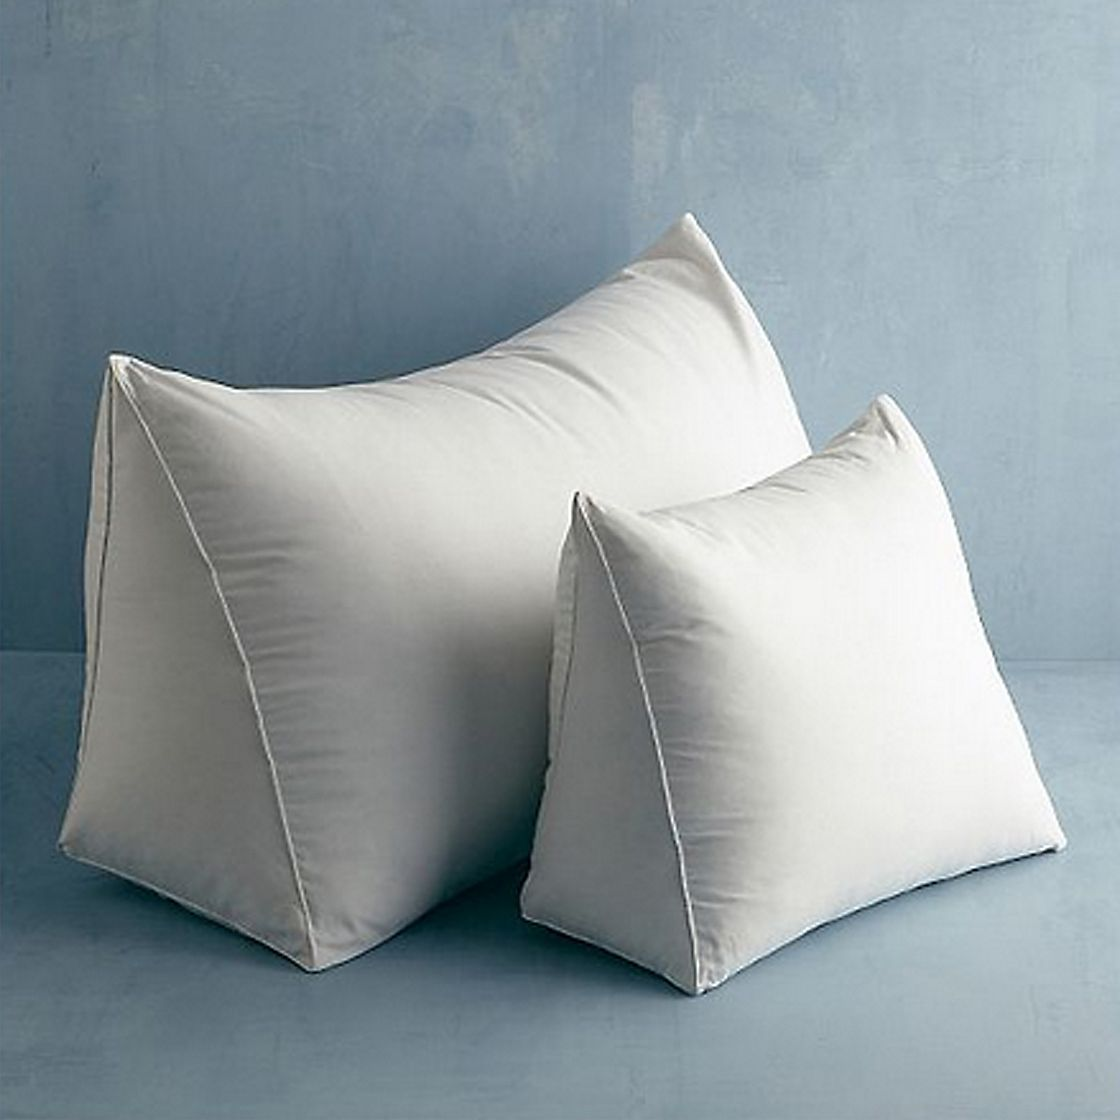 grey wedge ruffle white pure olivia shaped bedroom and pillow reading foam linen cushion detail pillows bed